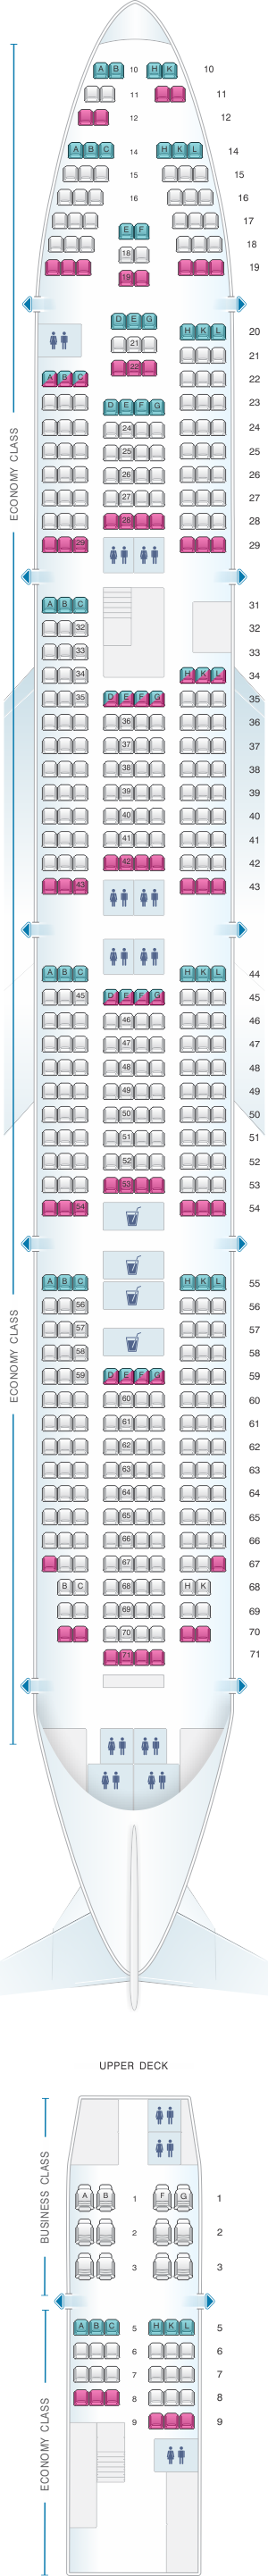 Seat map for Rossiya Airlines Boeing B747 400 V1